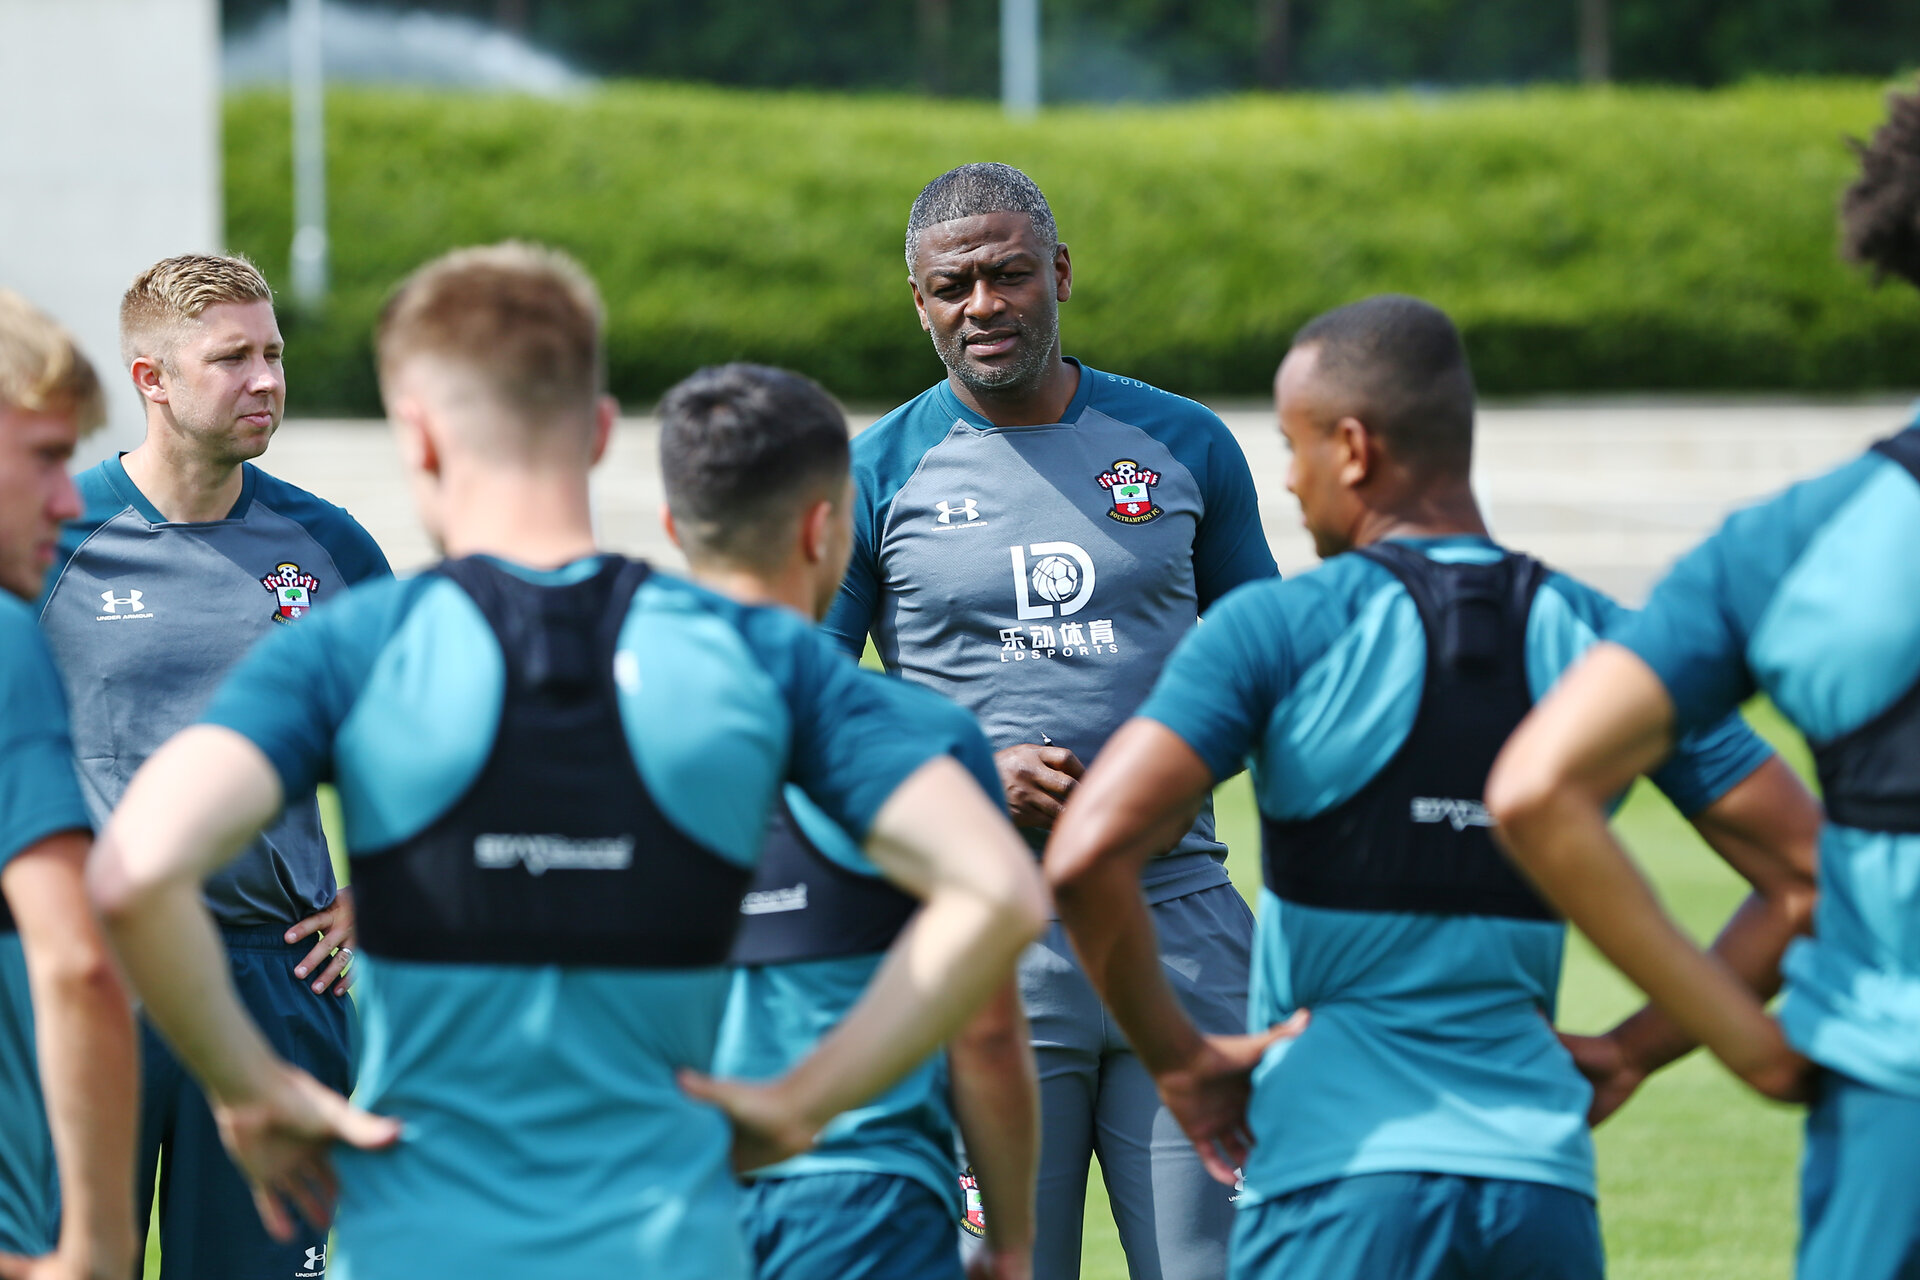 SOUTHAMPTON, ENGLAND - JULY 03:  Radhi Jaidi (middle) during an U23 Training Session pictured Staplewood Training Ground on the July 03, 2019 in Southampton, England. (Photo by James Bridle - Southampton FC/Southampton FC via Getty Images)